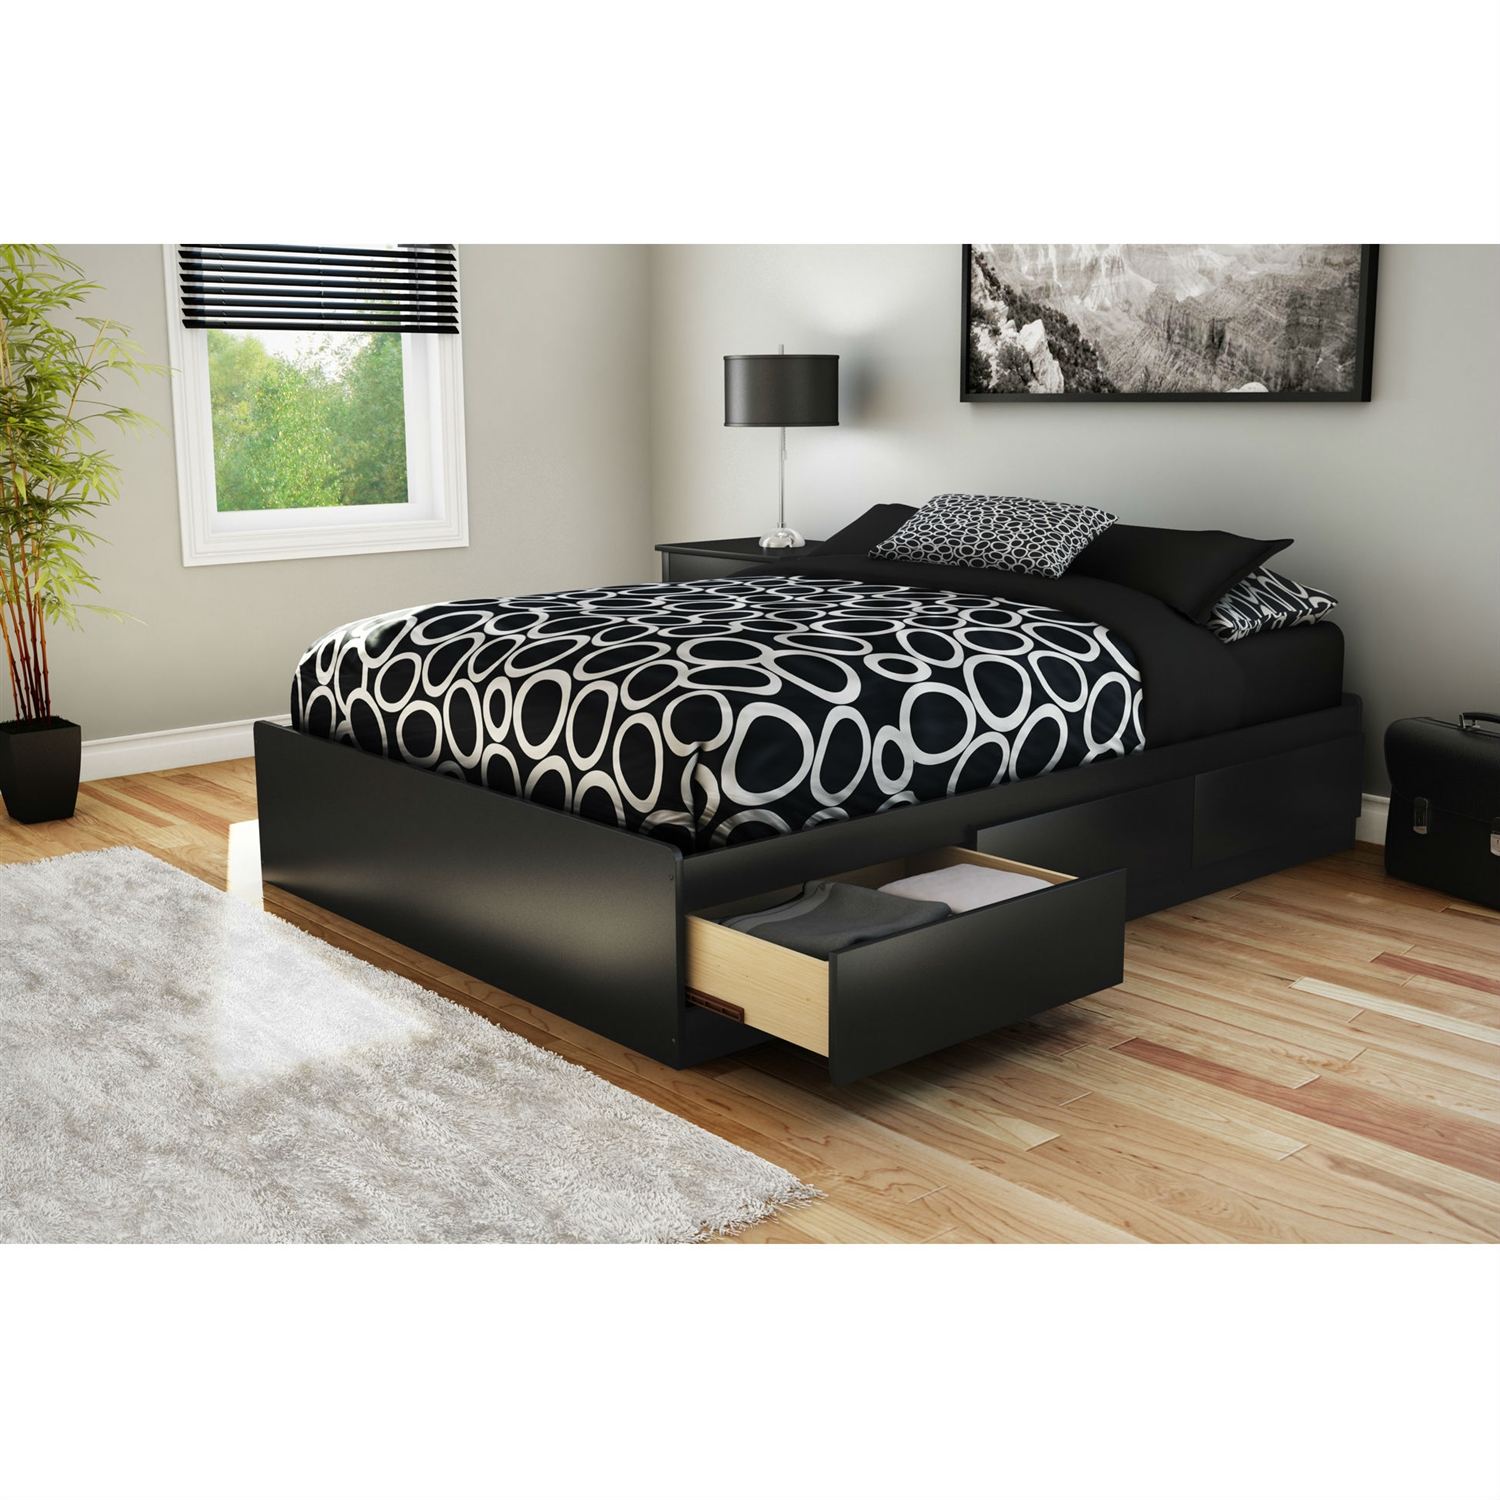 Full size Modern Platform Bed with 3 Storage Drawers in Black, SFPB27150 :  This Full size Modern Platform Bed with 3 Storage Drawers in Black would be a great addition to your home. It is made of non-toxic materials and there is no box spring required. Drawers opened easily without the need for handles thanks to the cut-out at bottom of the drawer fronts; Features 3 practical drawers (all on the same side); Supports up to maximum weight of 500lbs. Equipped with polymer glides include dampers and catches; Recycled CARB compliant laminated particle board construction; Manufacturer provides 5 year warranty against furniture defects or workmanship; Number of Underbed Storage Drawers: 3; FSC Certified: Yes; Assembly Required: Yes; EPP Compliant: Yes; CPSIA or CPSC Compliant: Yes; CARB Compliant: Yes; Frame Material: Particle board; ISTA 3A Certified: Yes; General Conformity Certificate: Yes; Underbed Storage: Yes; Country of Manufacture: Canada. Eco-Friendly: Yes; Product Care: Wipe clean with dry cloth; Drawer Interior Height - Top to Bottom: 4.375 Inches; Drawer Interior Width - Side to Side: 22.625 Inches; Drawer Interior - Depth Front to Back: 18.5625 Inches.